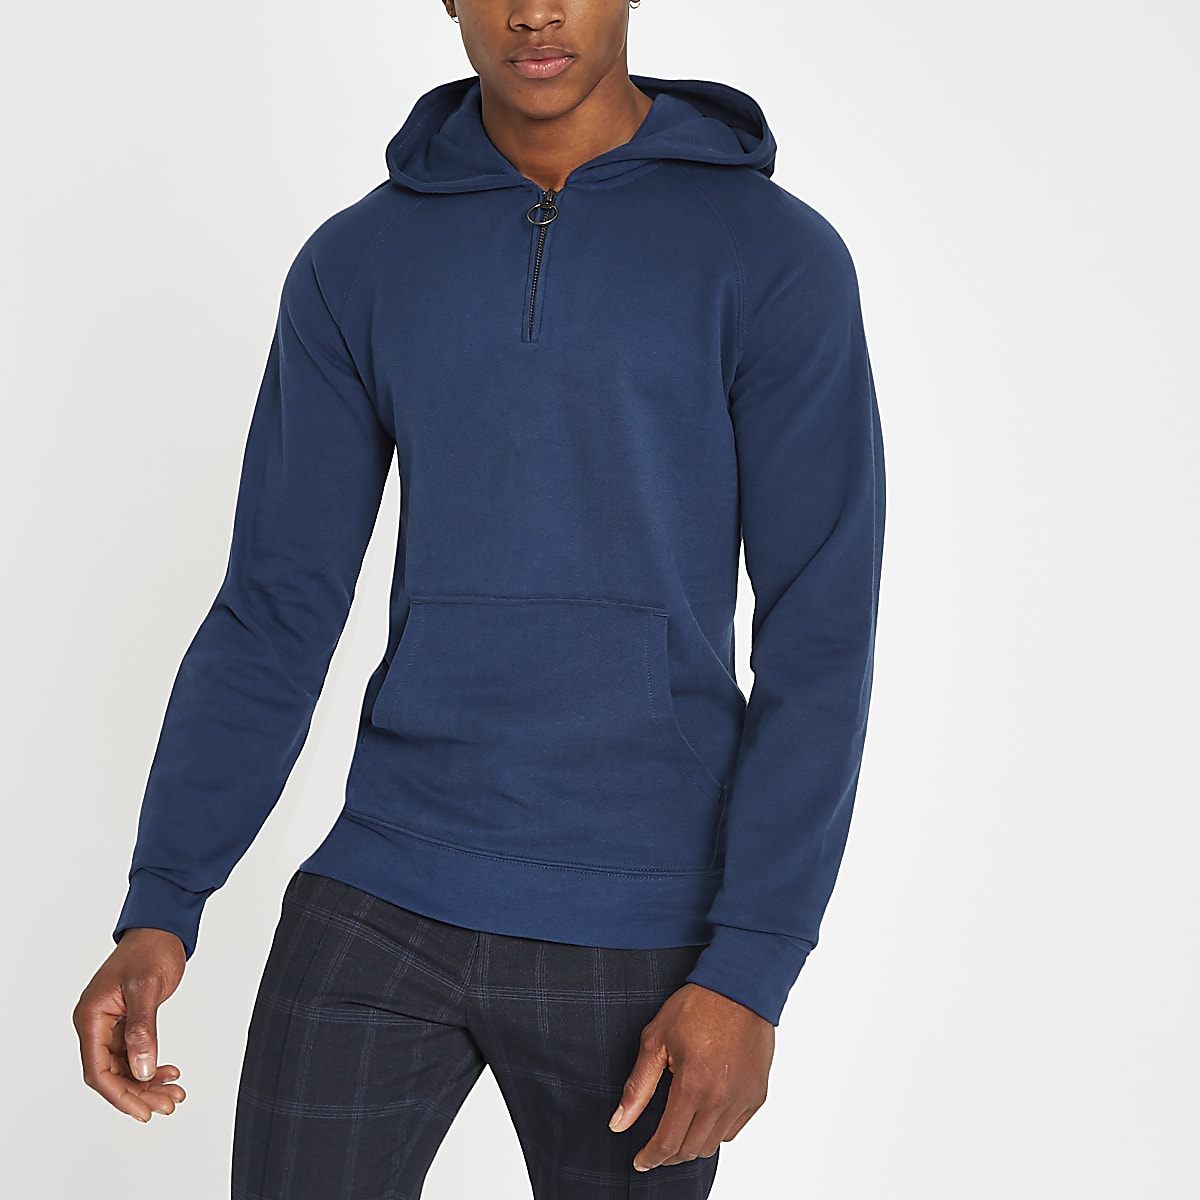 Selected Homme blue organic cotton hoodie